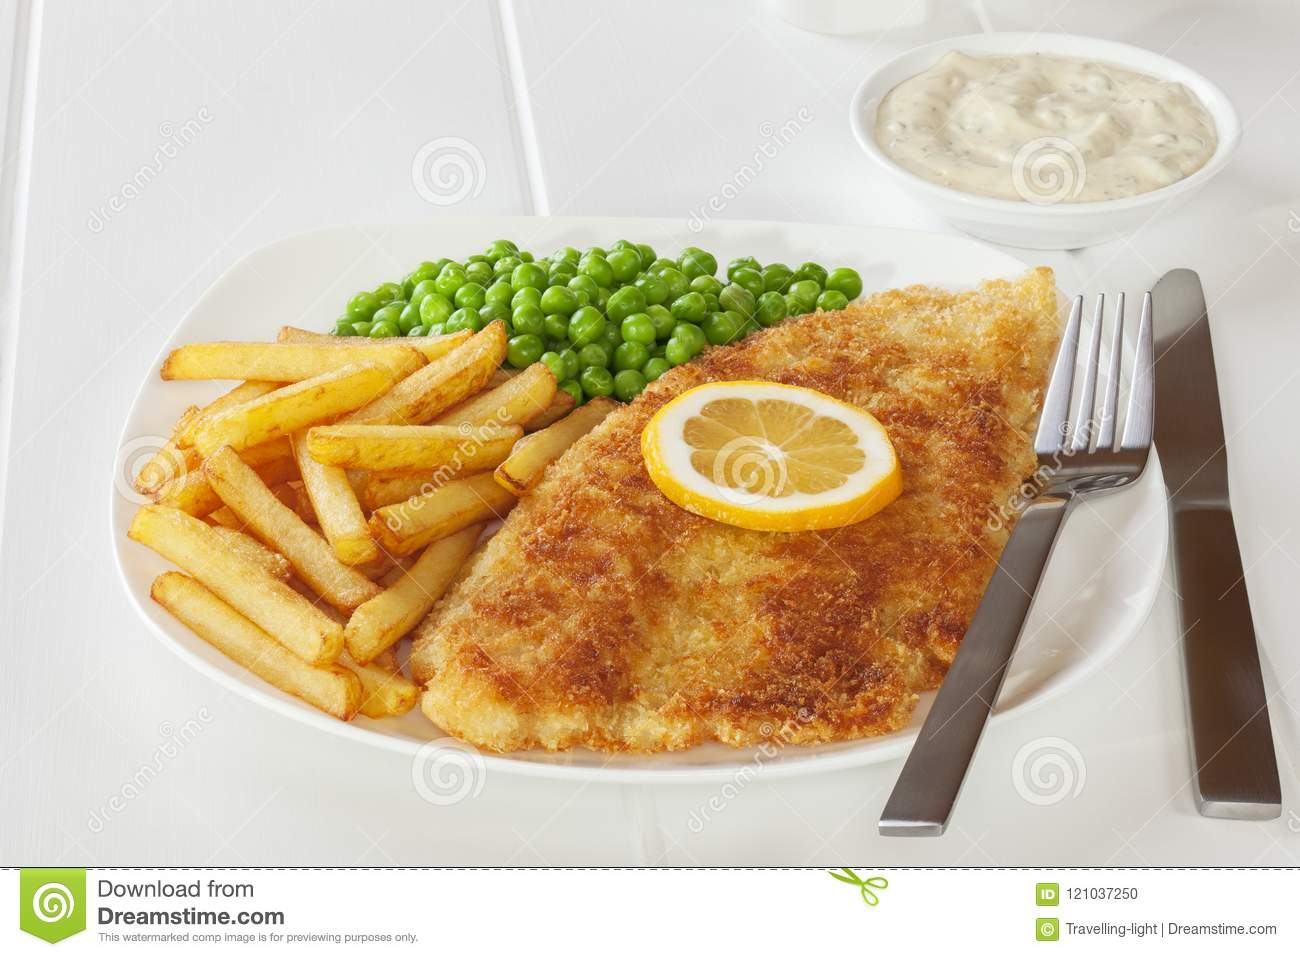 Crumbed Fiah and Chips